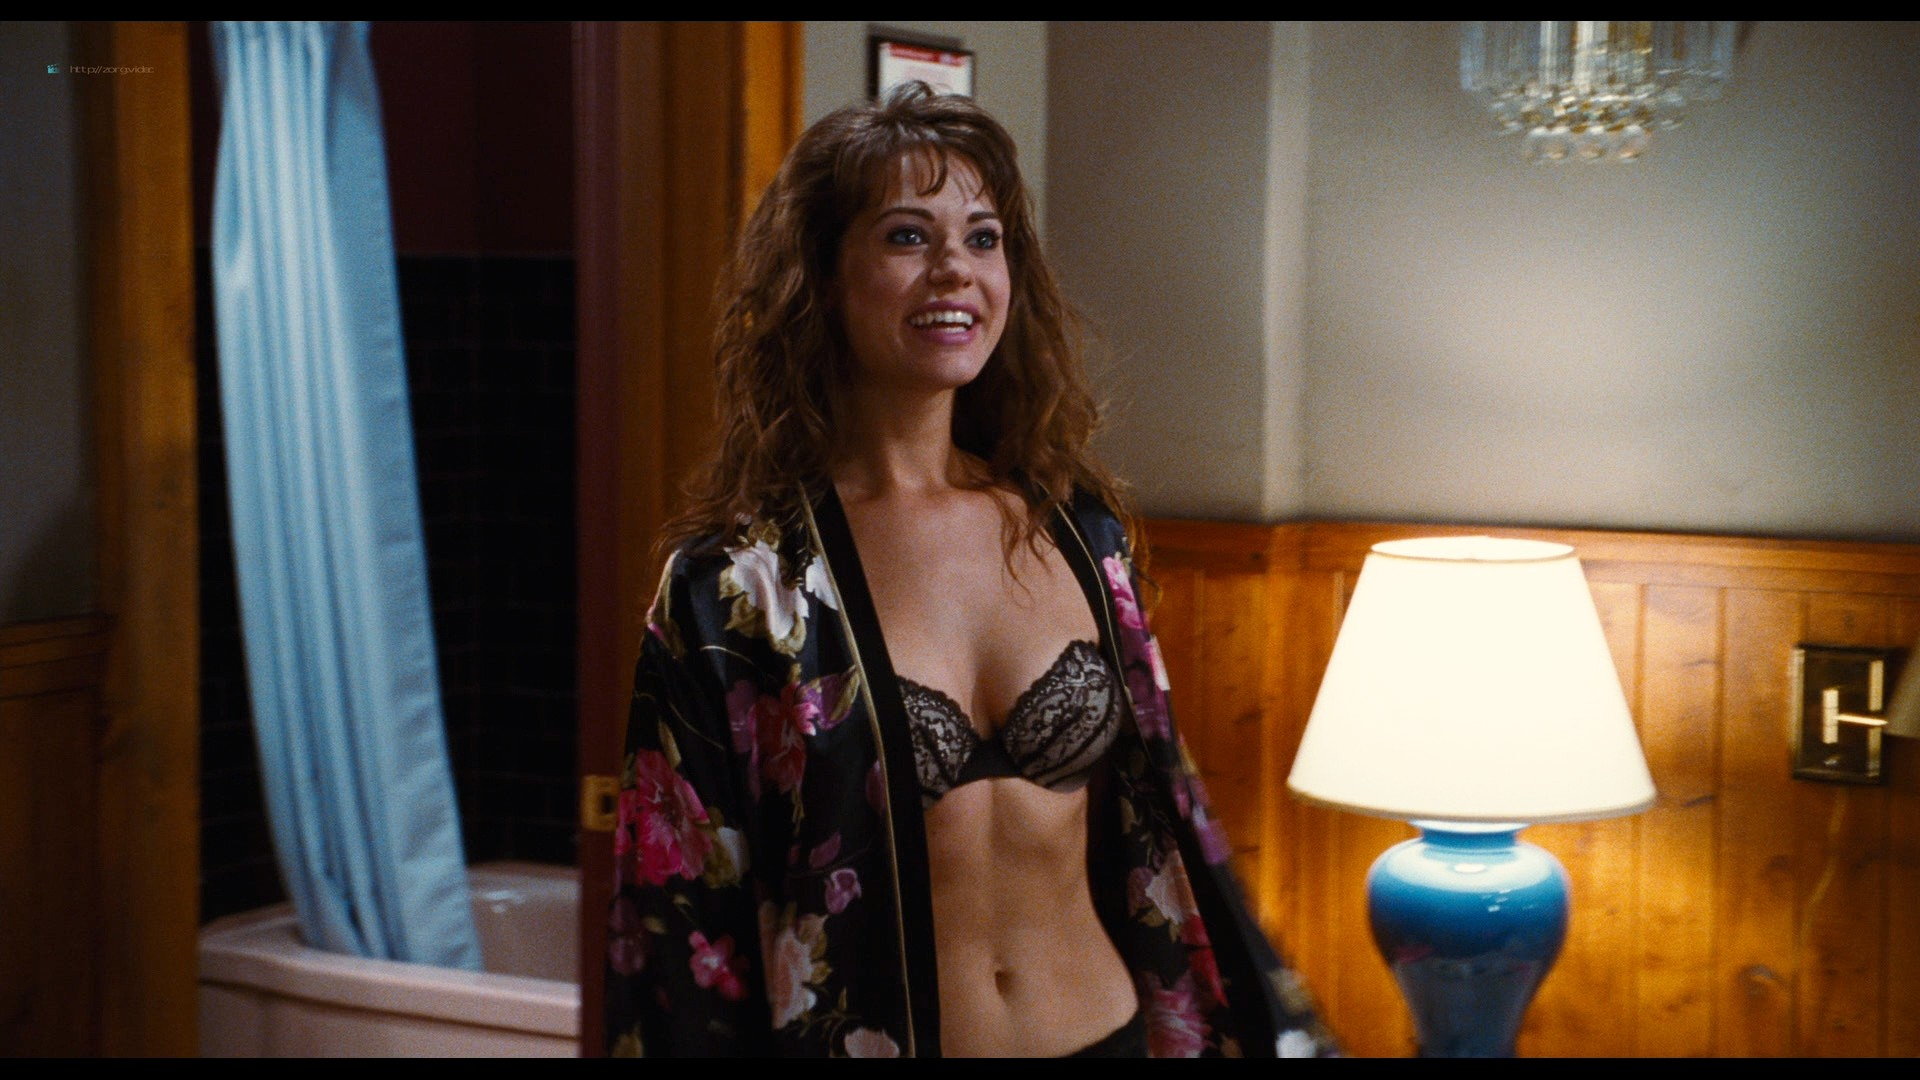 Jessica Pare nude Crystal Lowe topless Lyndsy Fonseca hot and sexy - Hot Tub Time Machine (2010) HD 1080p BluRay REMUX (20)